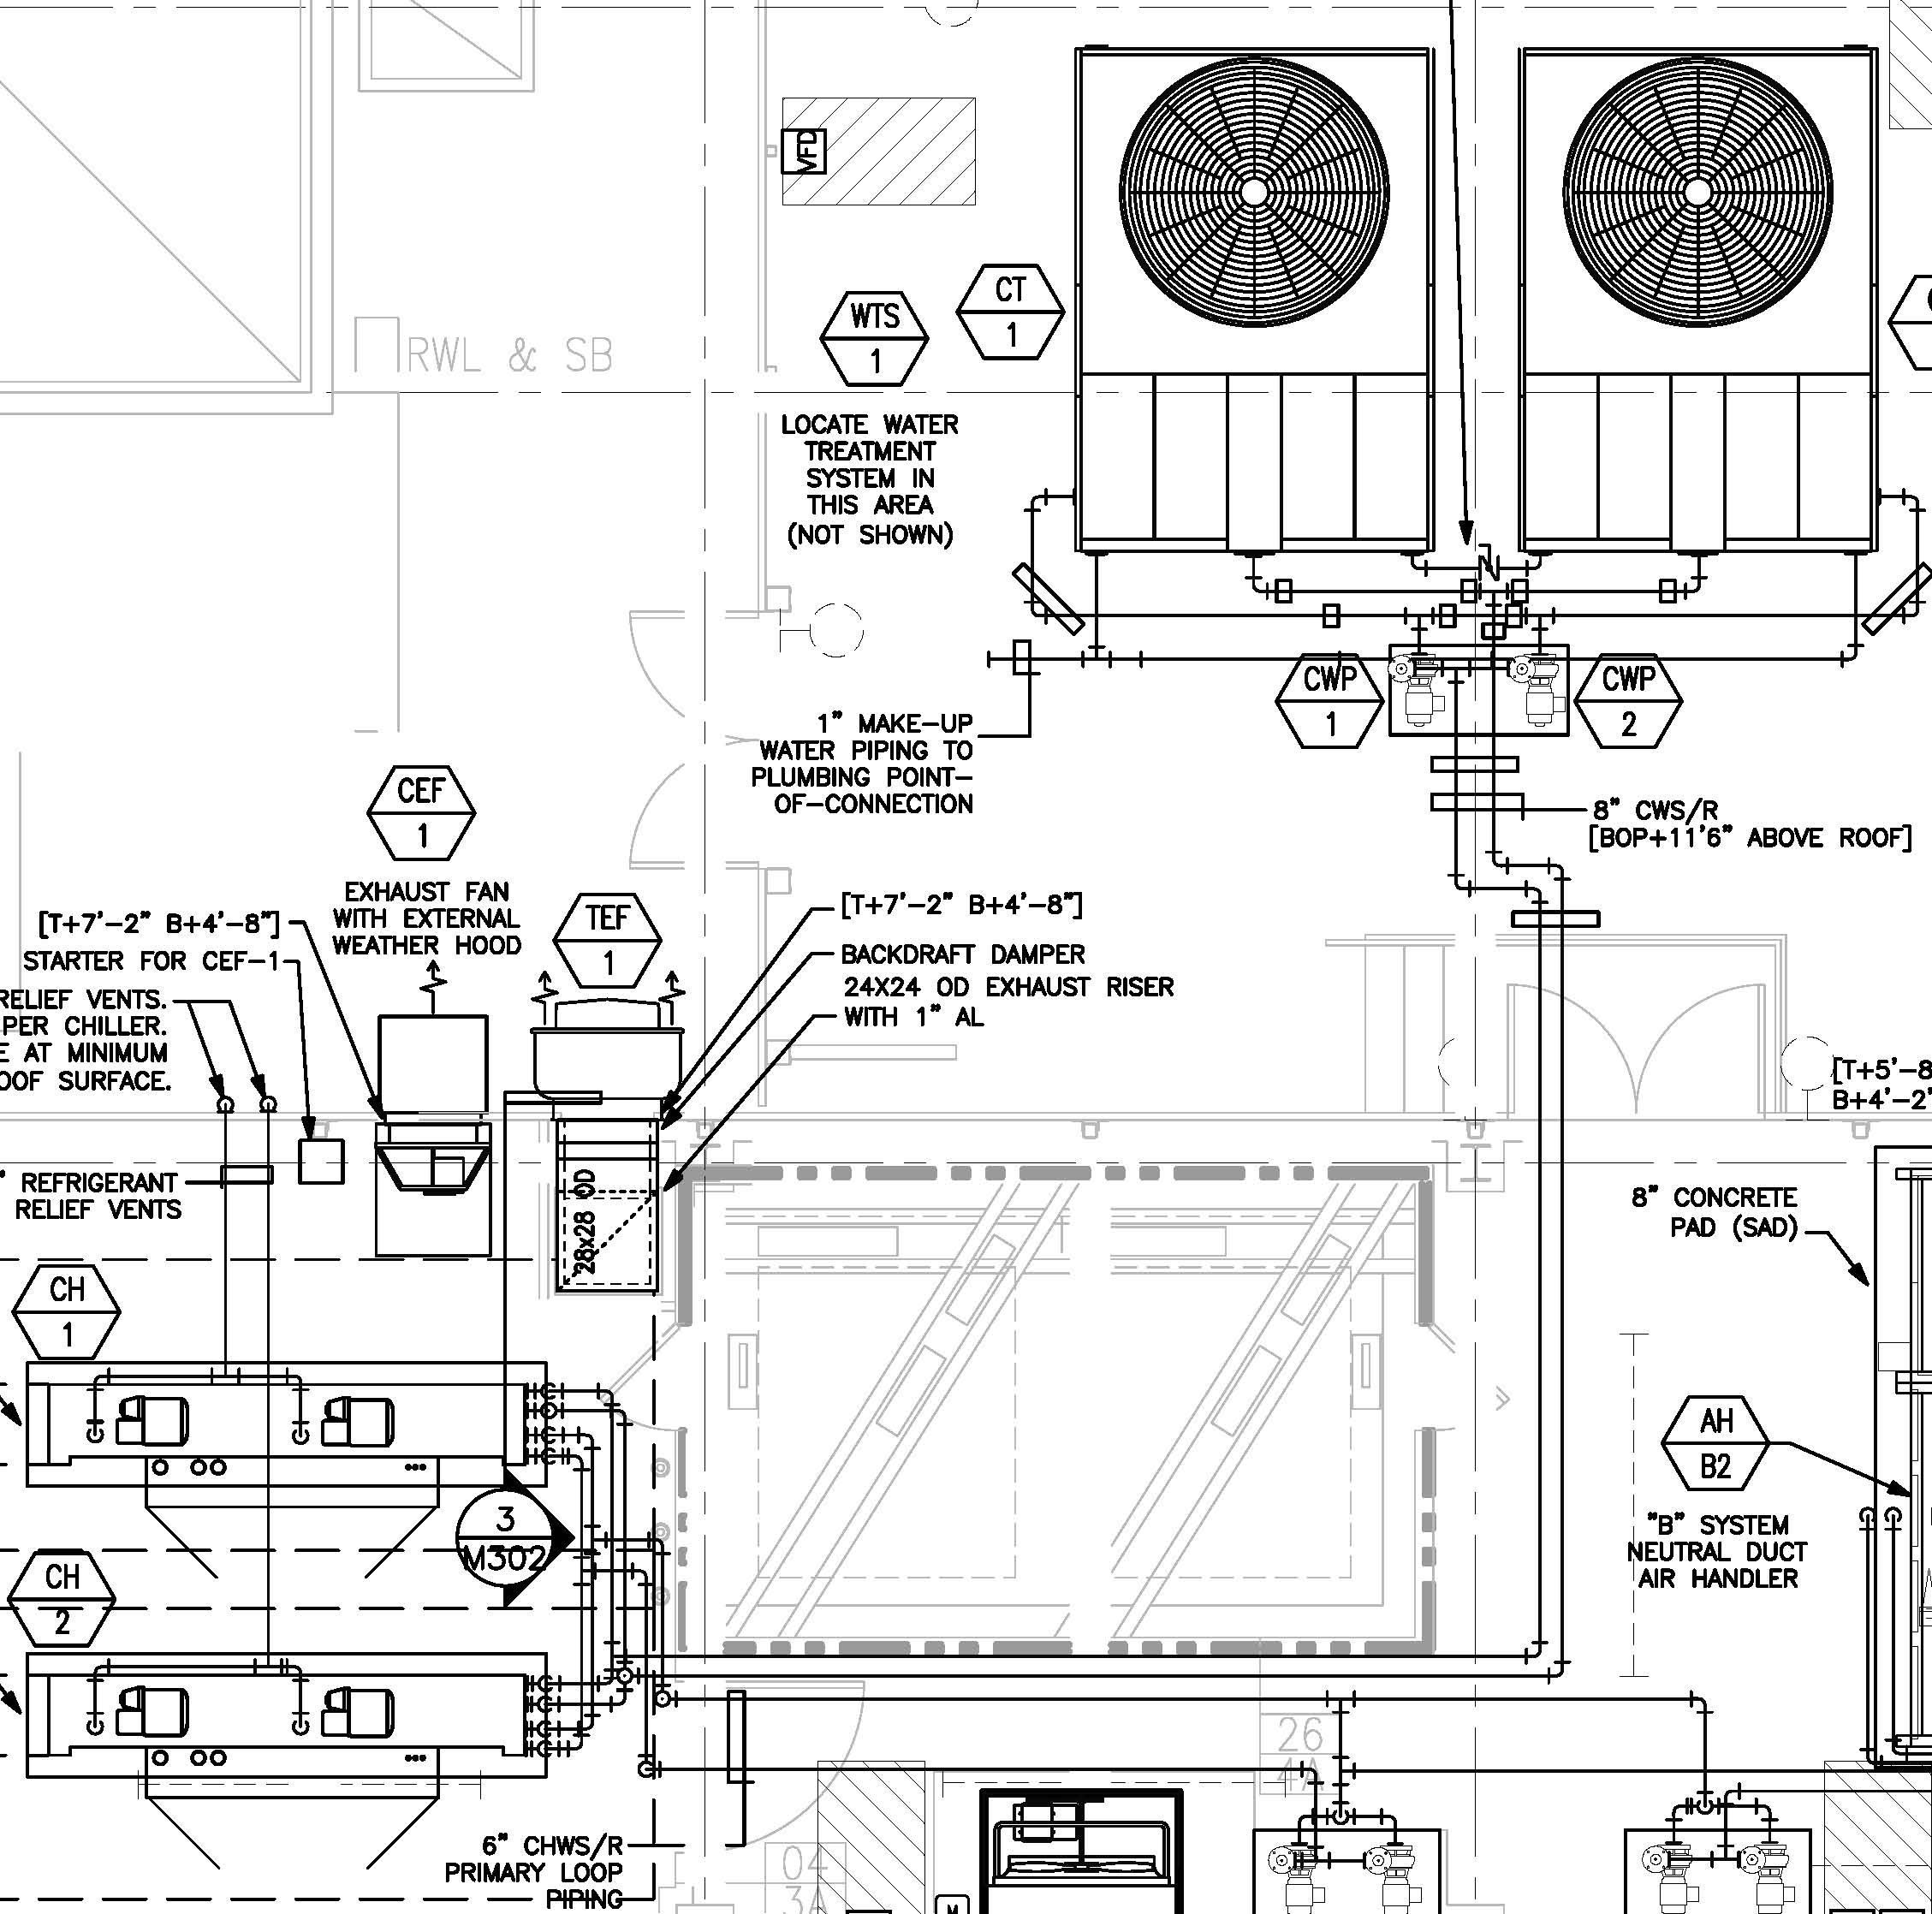 2000 ford escort zx2 engine diagram wiring diagrams